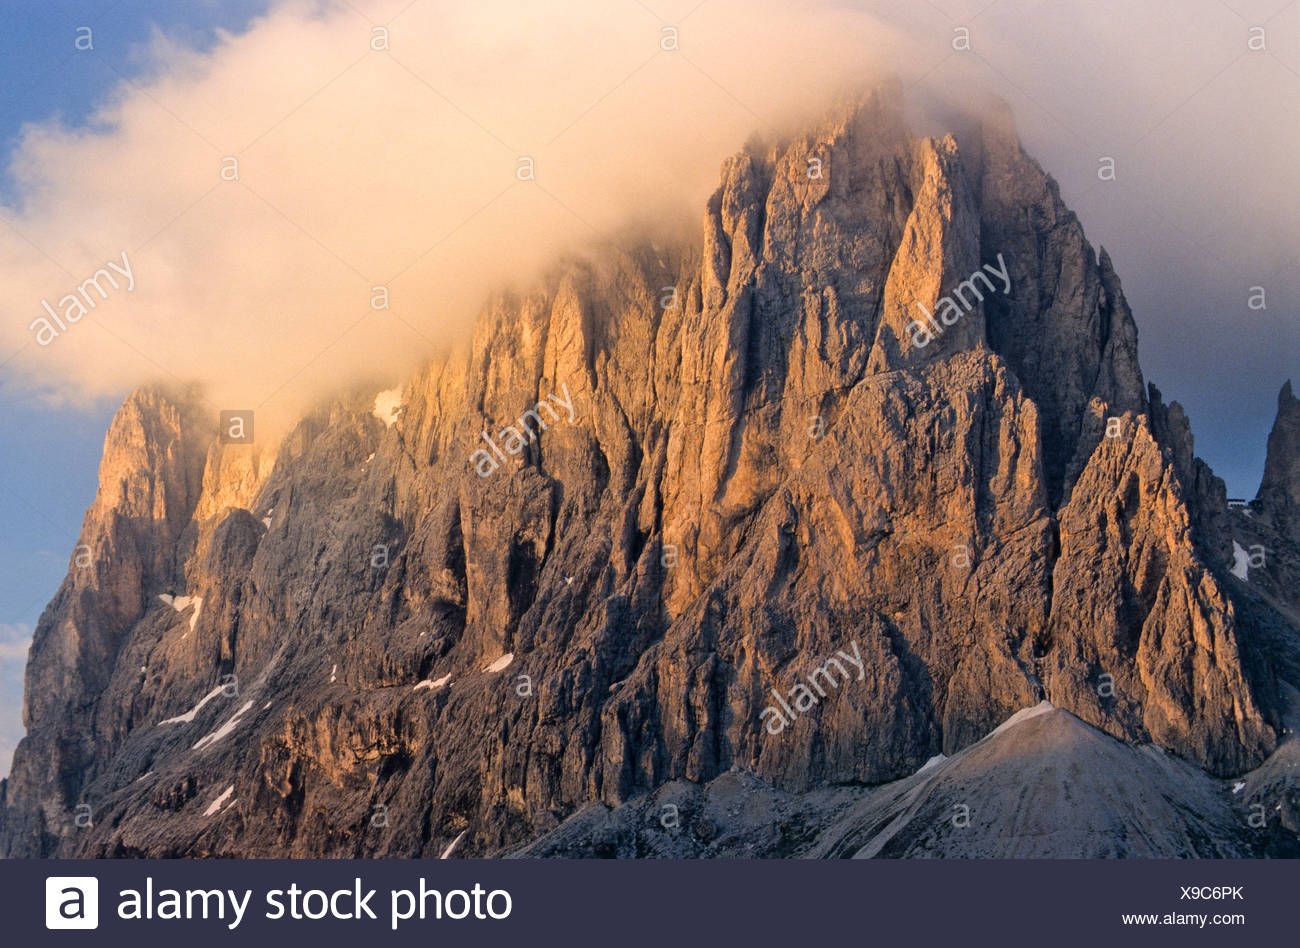 Rock face of Mt. Langkofel, wispy clouds in pale evening light, Dolomites, Bolzano-Bozen, Italy, Europe - Stock Image